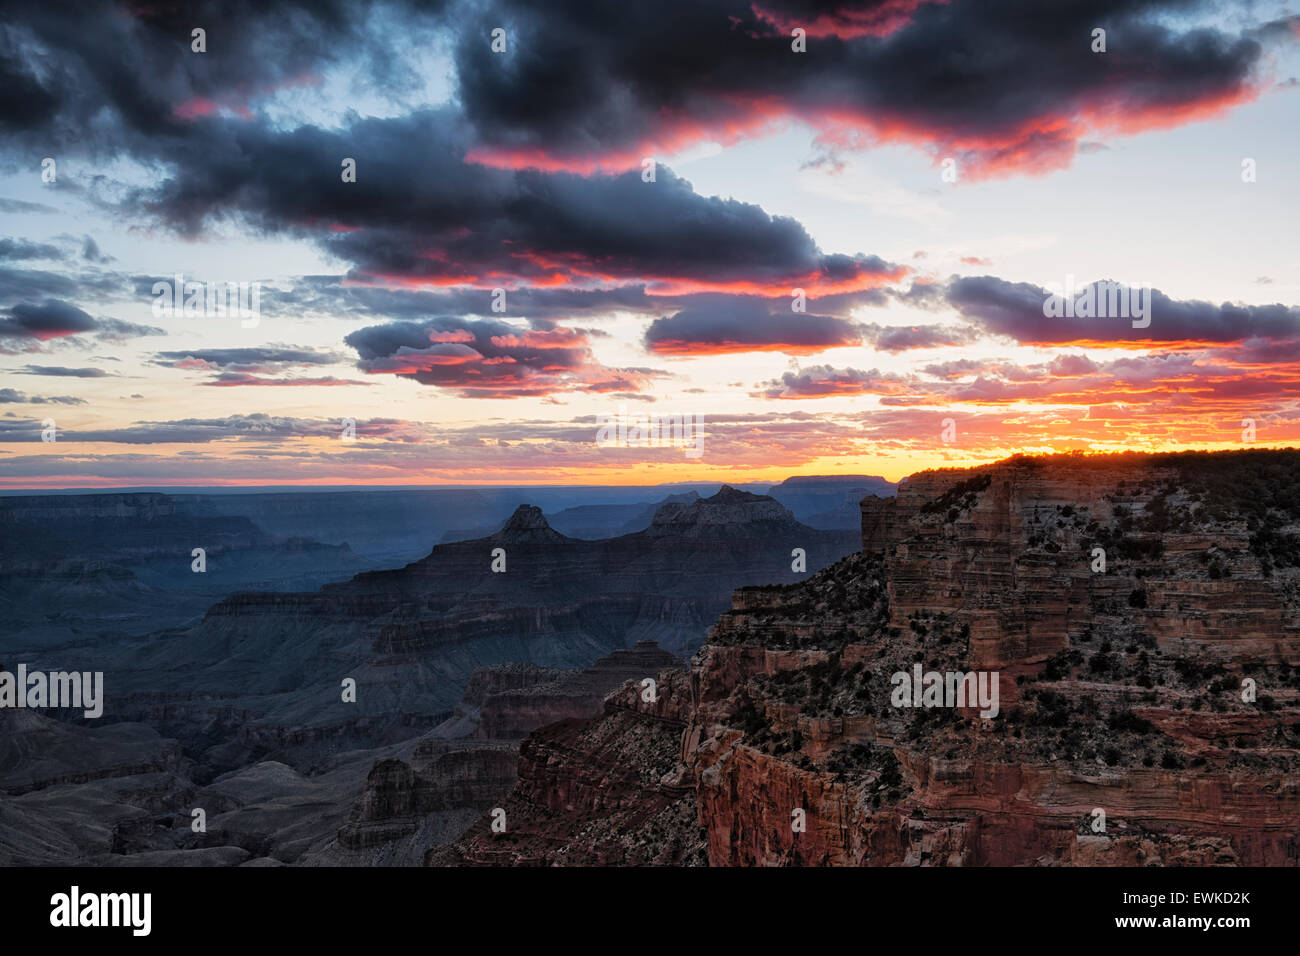 Fiery sunset from Cape Royal on the North Rim of Arizona's Grand Canyon National Park. - Stock Image